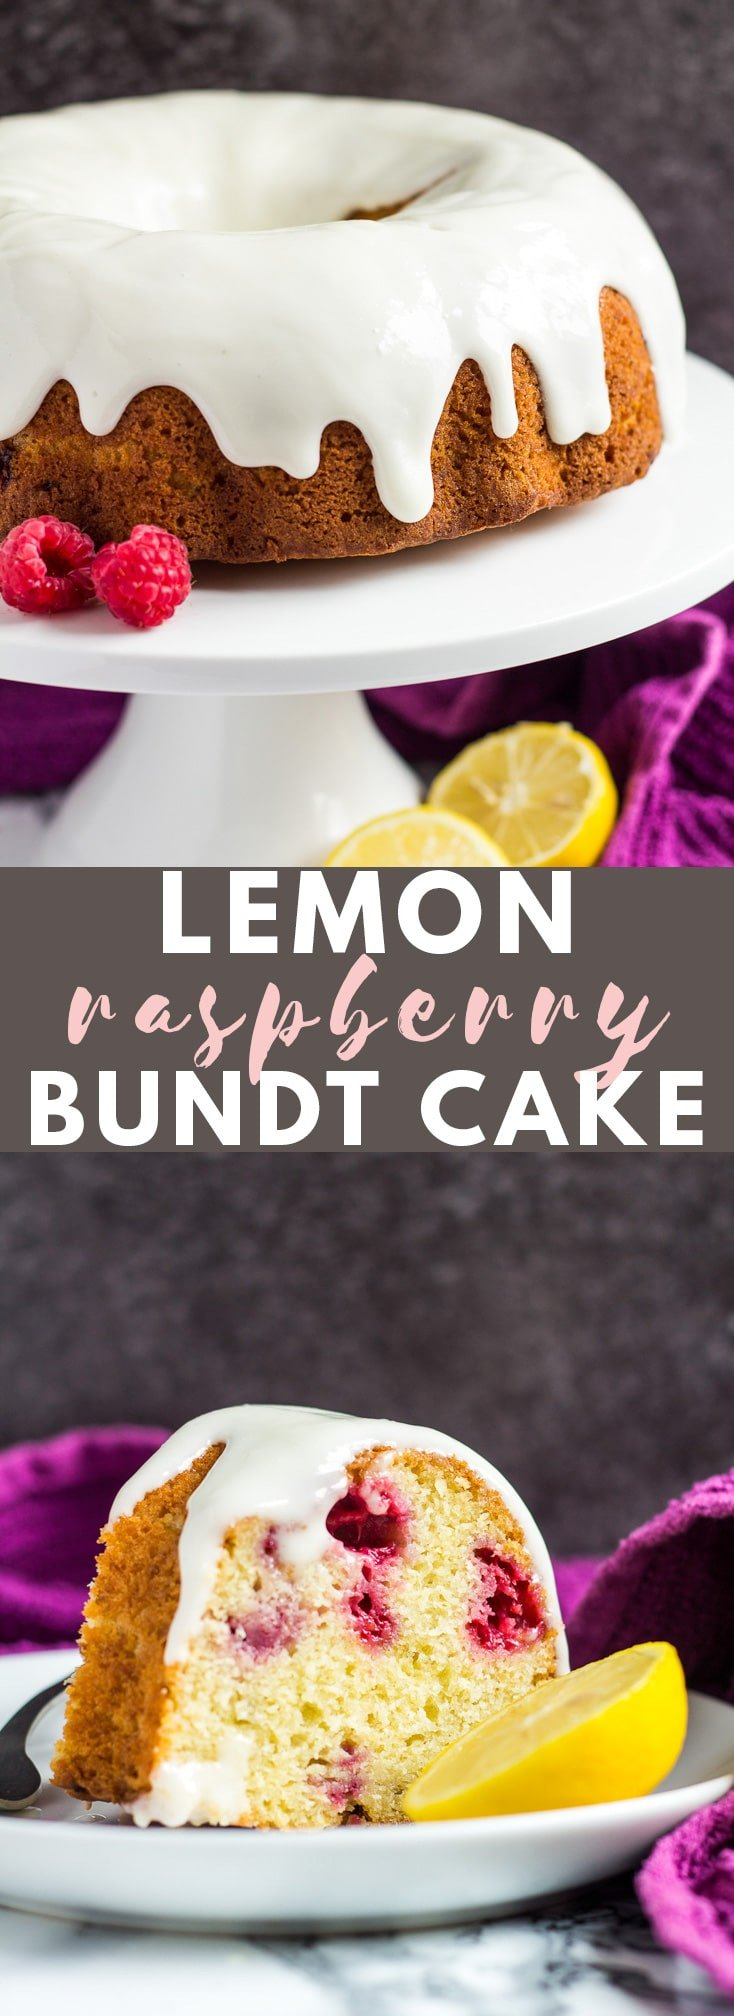 Lemon Raspberry Bundt Cake - Deliciously moist and fluffy lemon-infused bundt cake stuffed with fresh raspberries, and drizzled with a lemon cream cheese glaze! #lemon #raspberry #bundtcake #cakerecipes